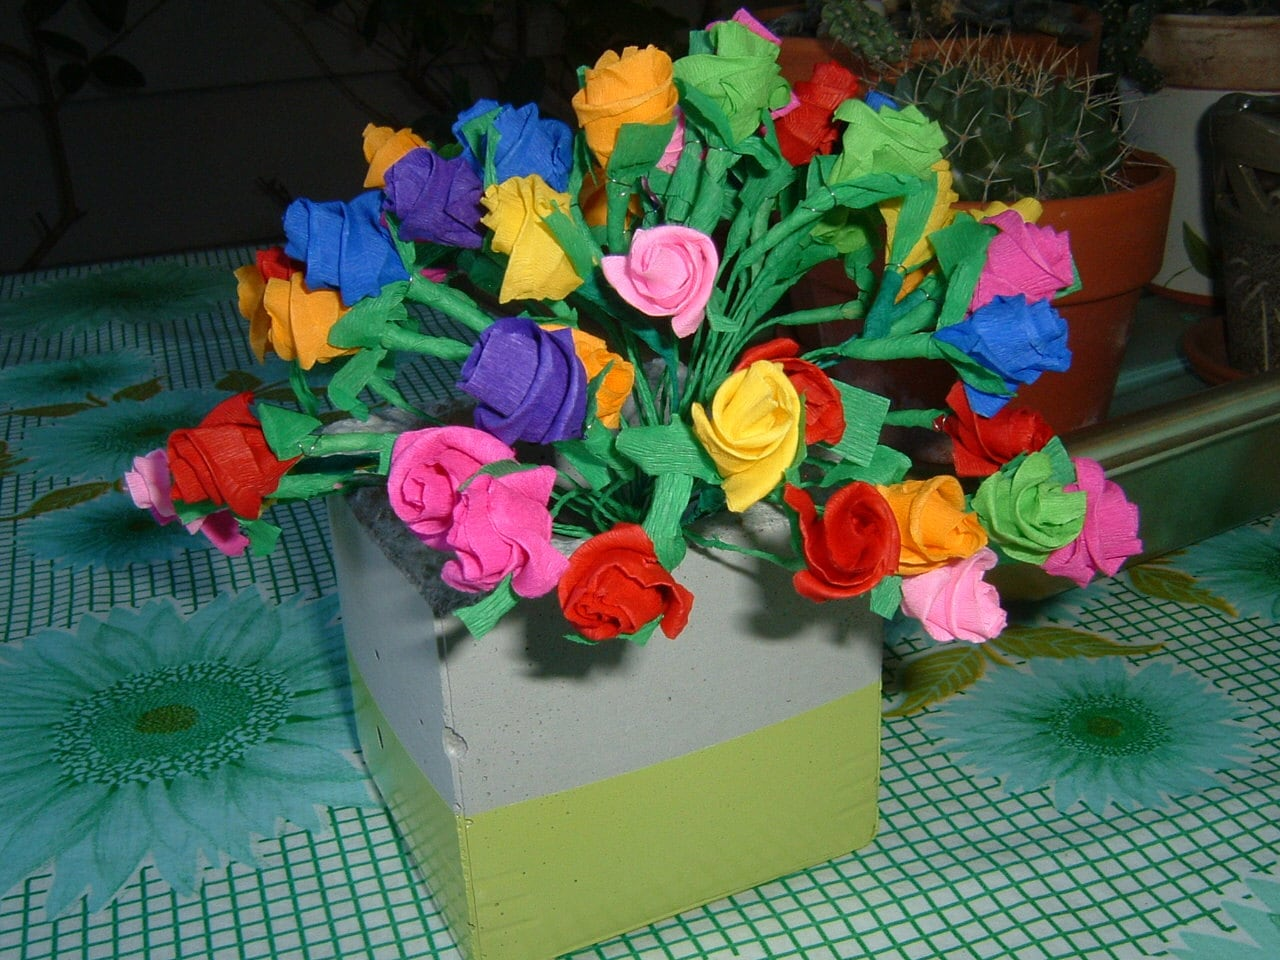 Paper Flowers Mexican Crepe Paper from manosmias on Etsy Studio